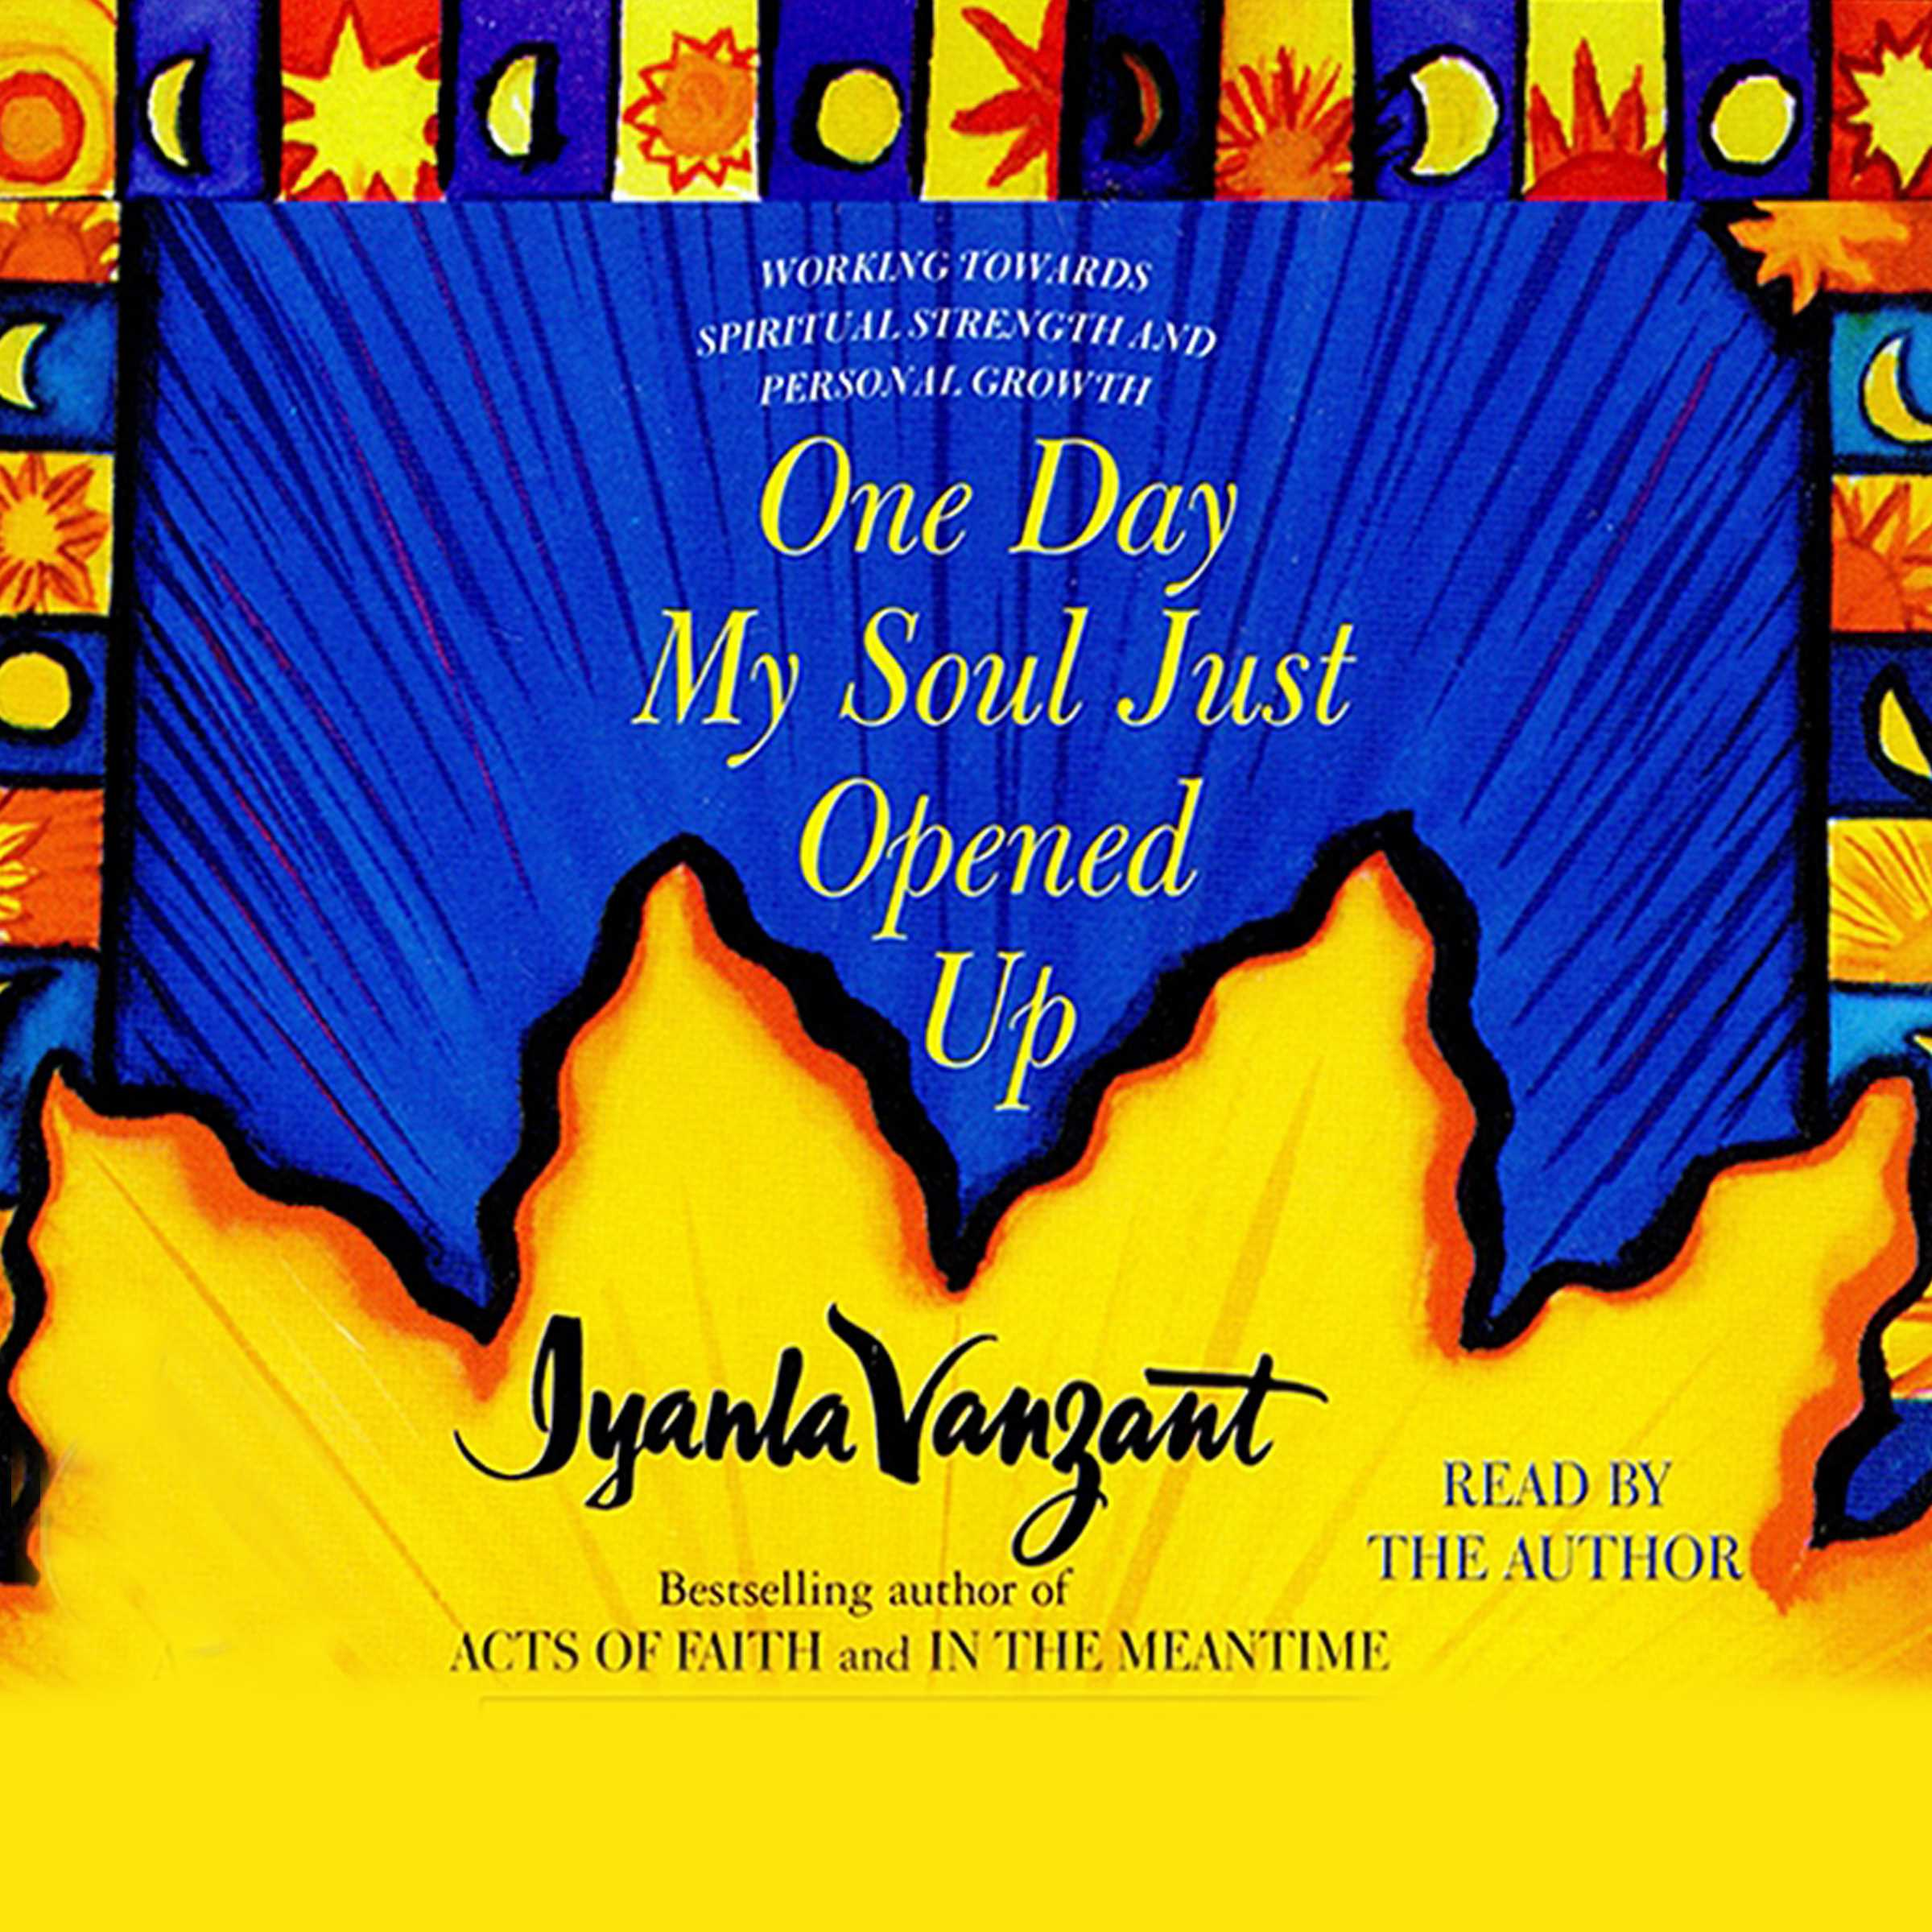 Book Cover Image (jpg): One Day My Soul Just Opened Up  One Day Resume